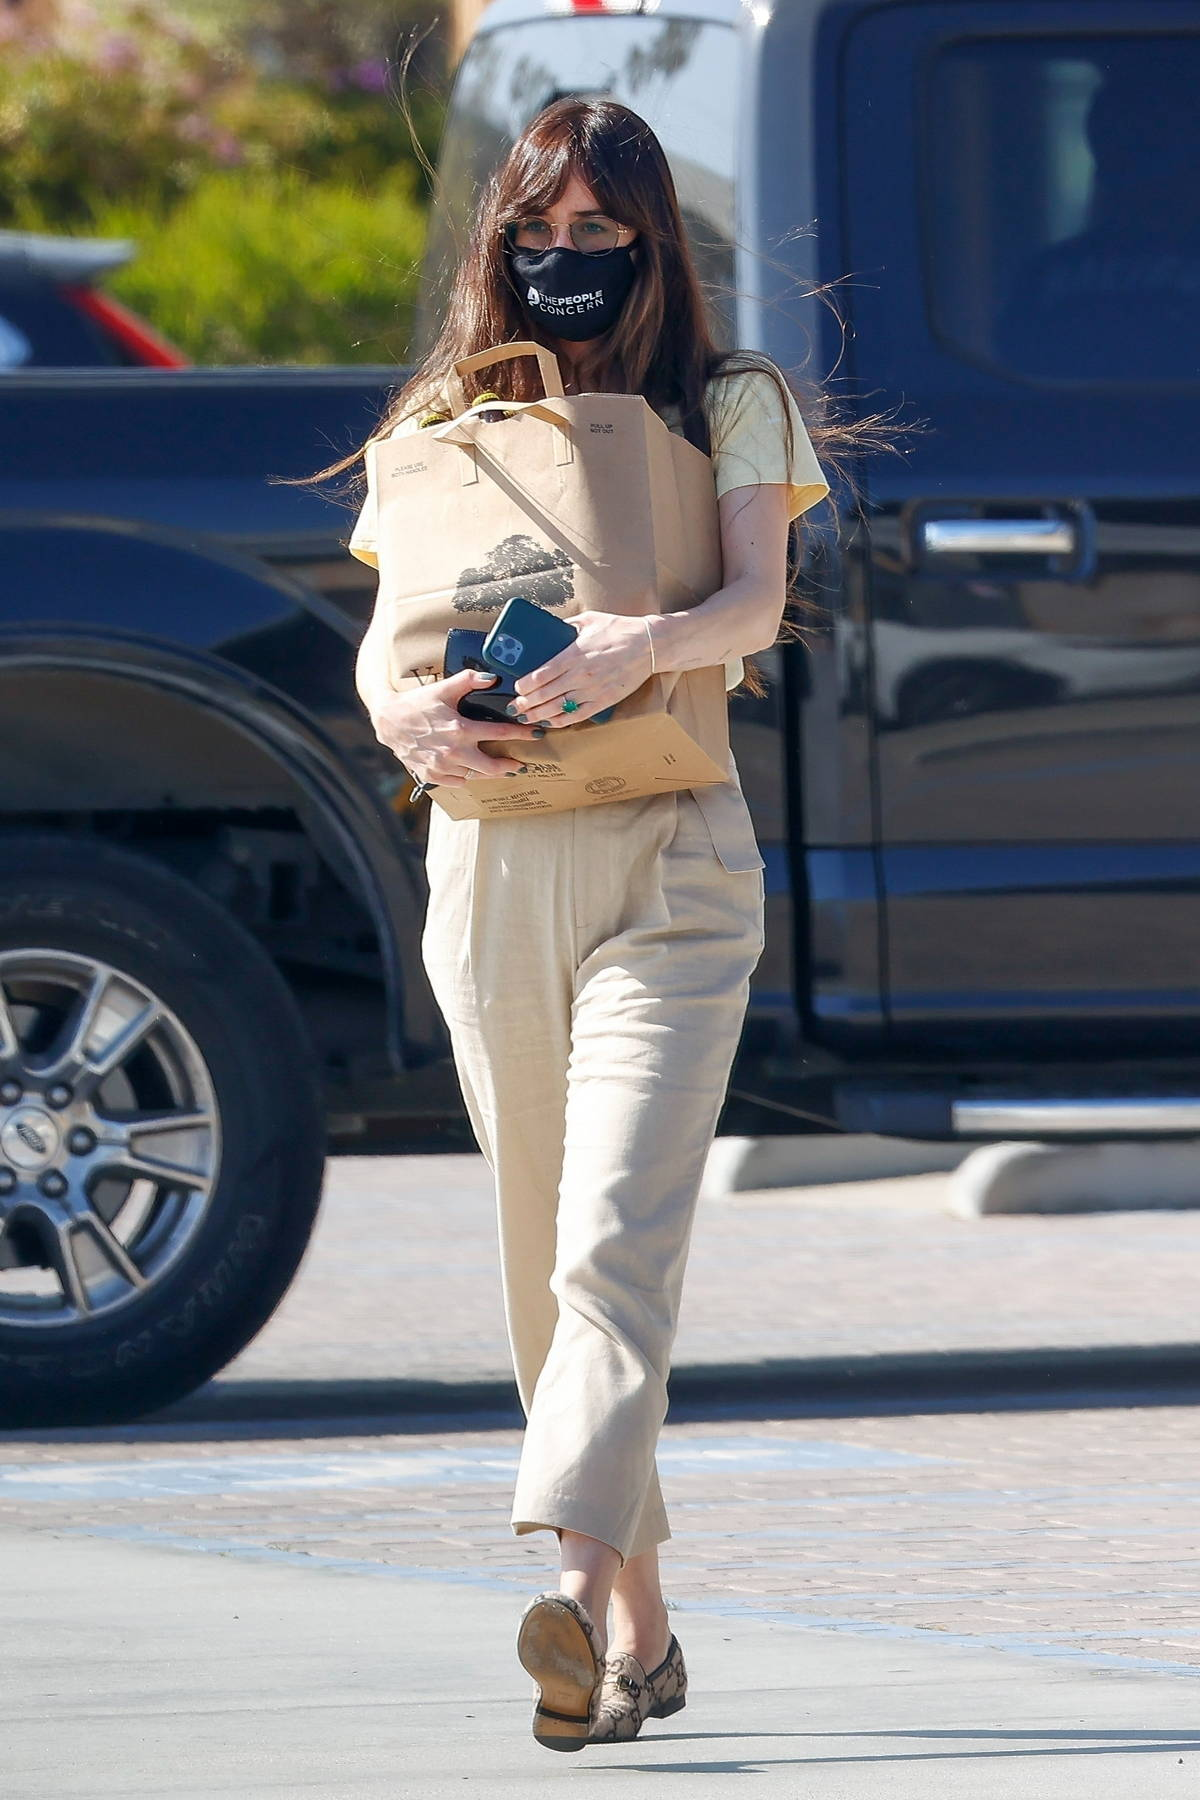 Dakota Johnson picks up some groceries before grabbing herself a coffee while out in Malibu, California